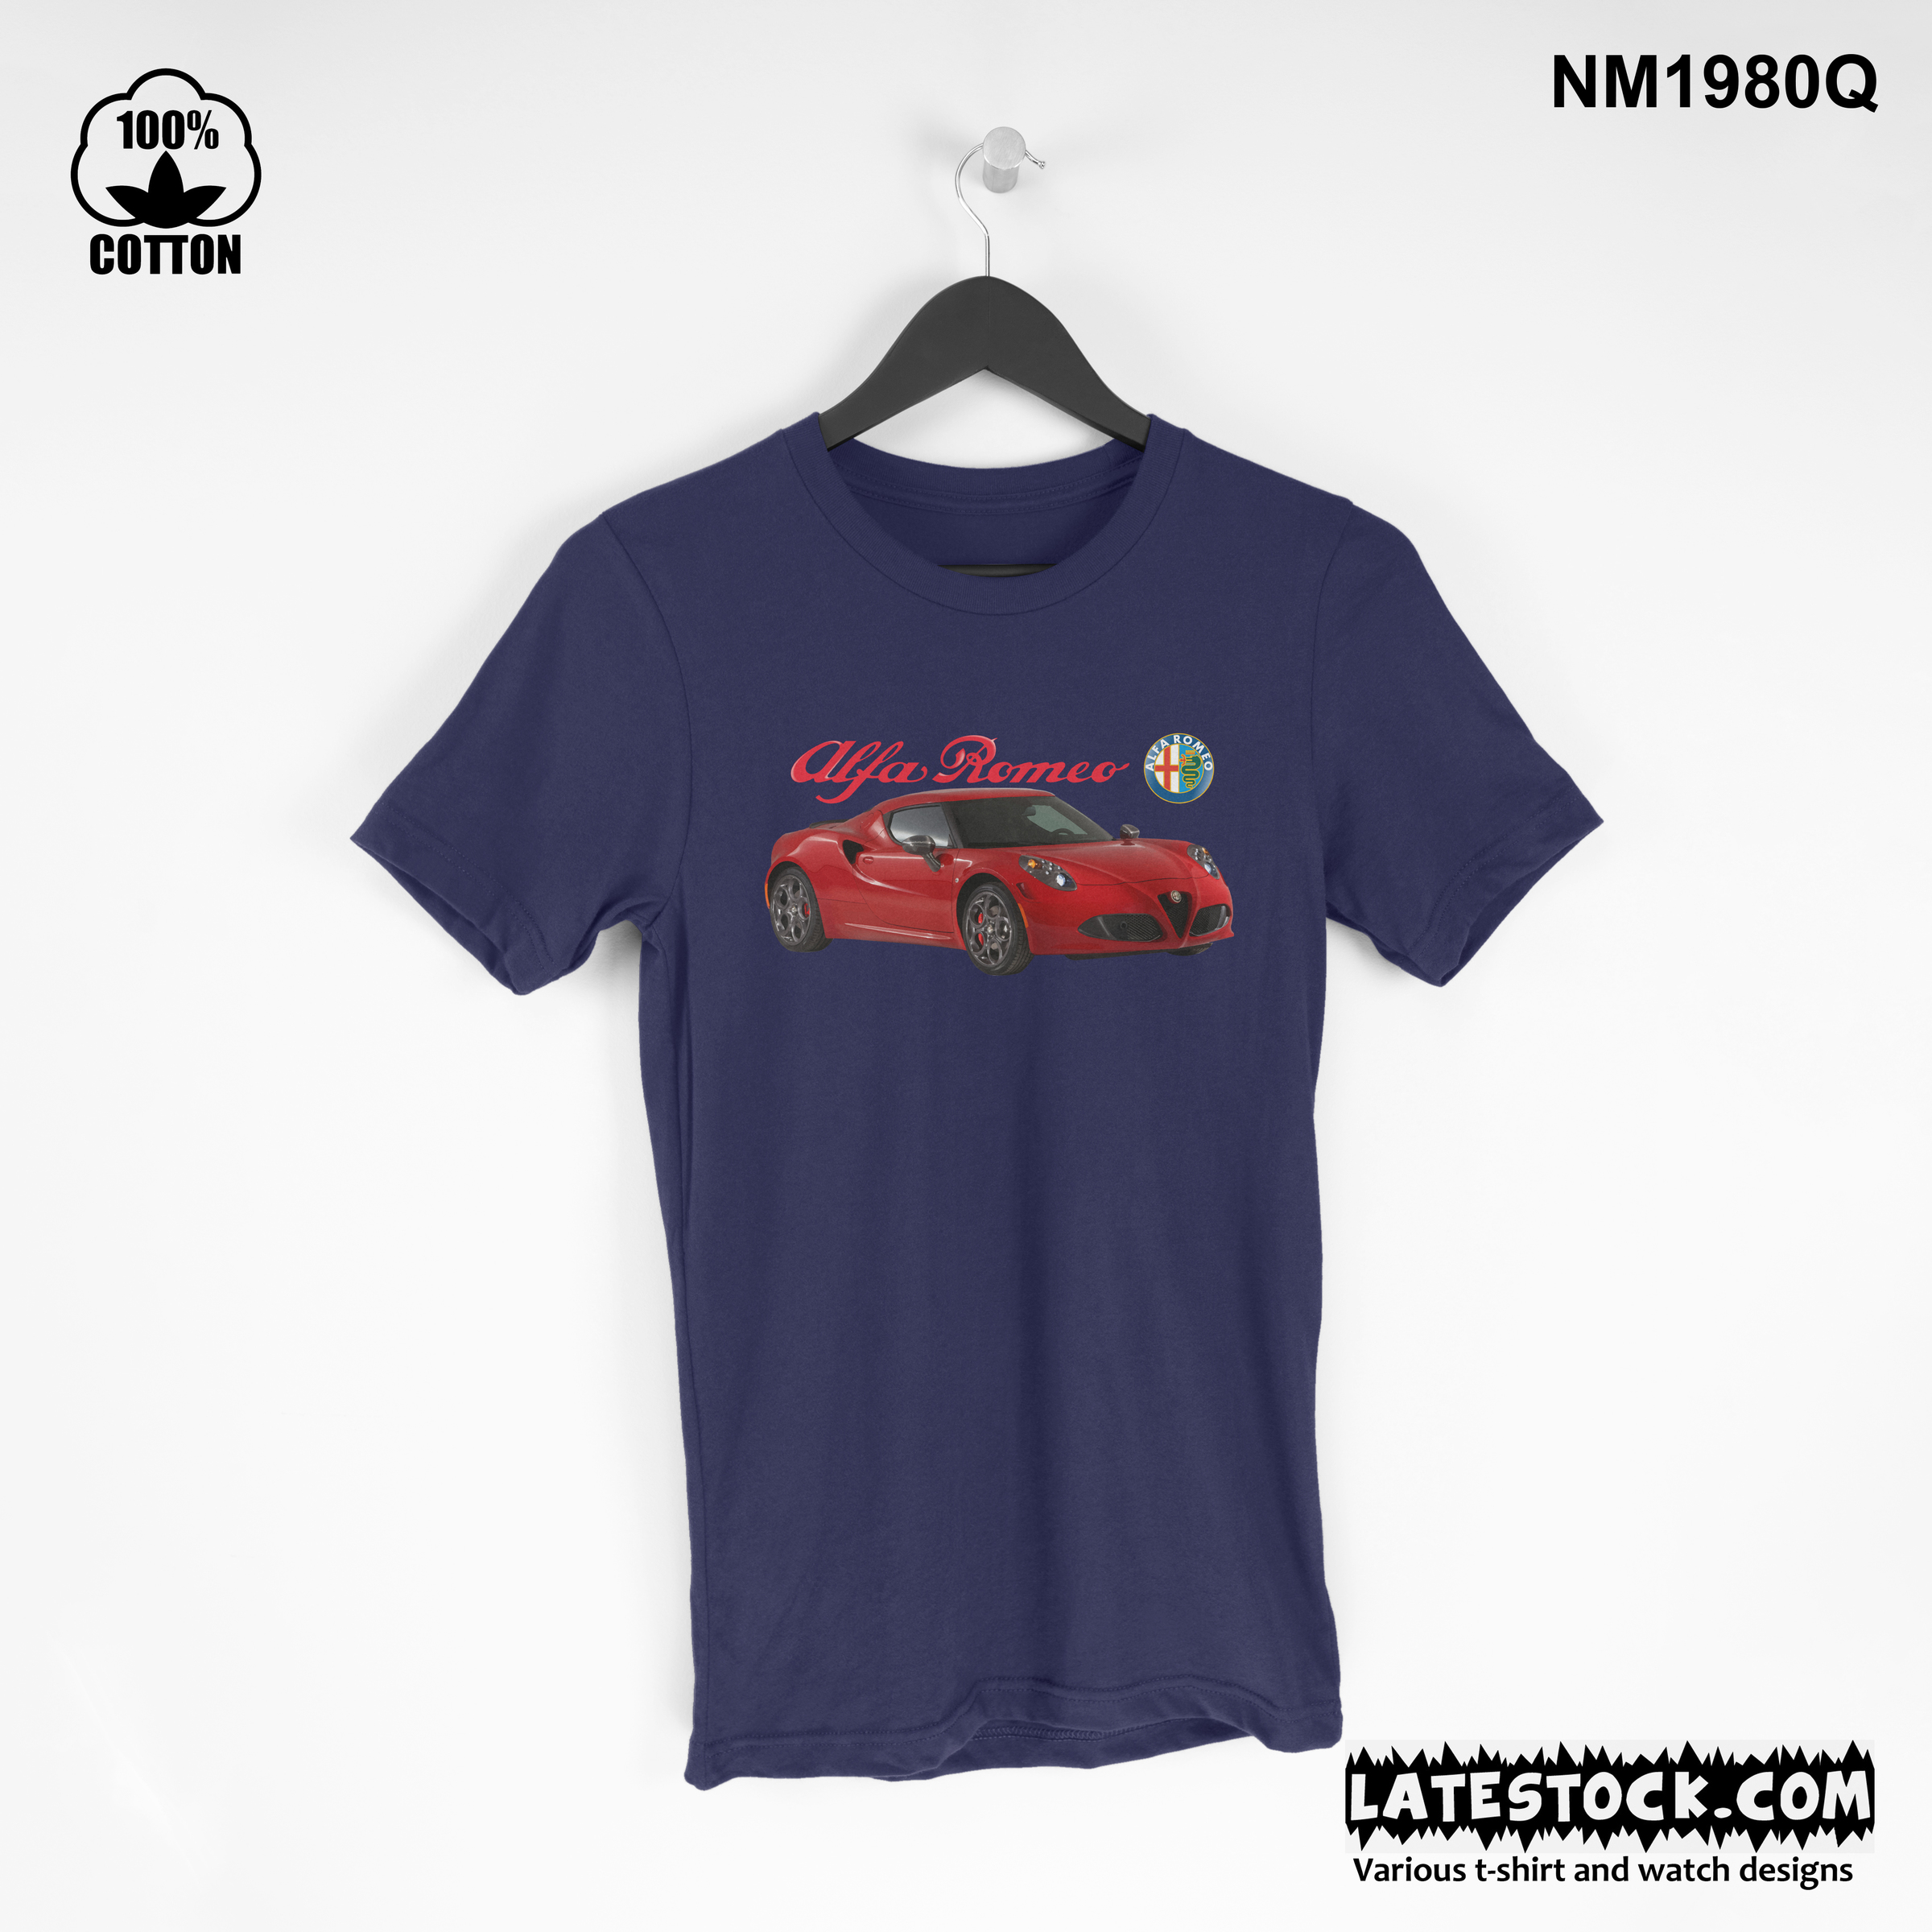 1.6 rare item, new design Alfa Romeo 4C T Shirt Tee Unisex dark blue.jpg